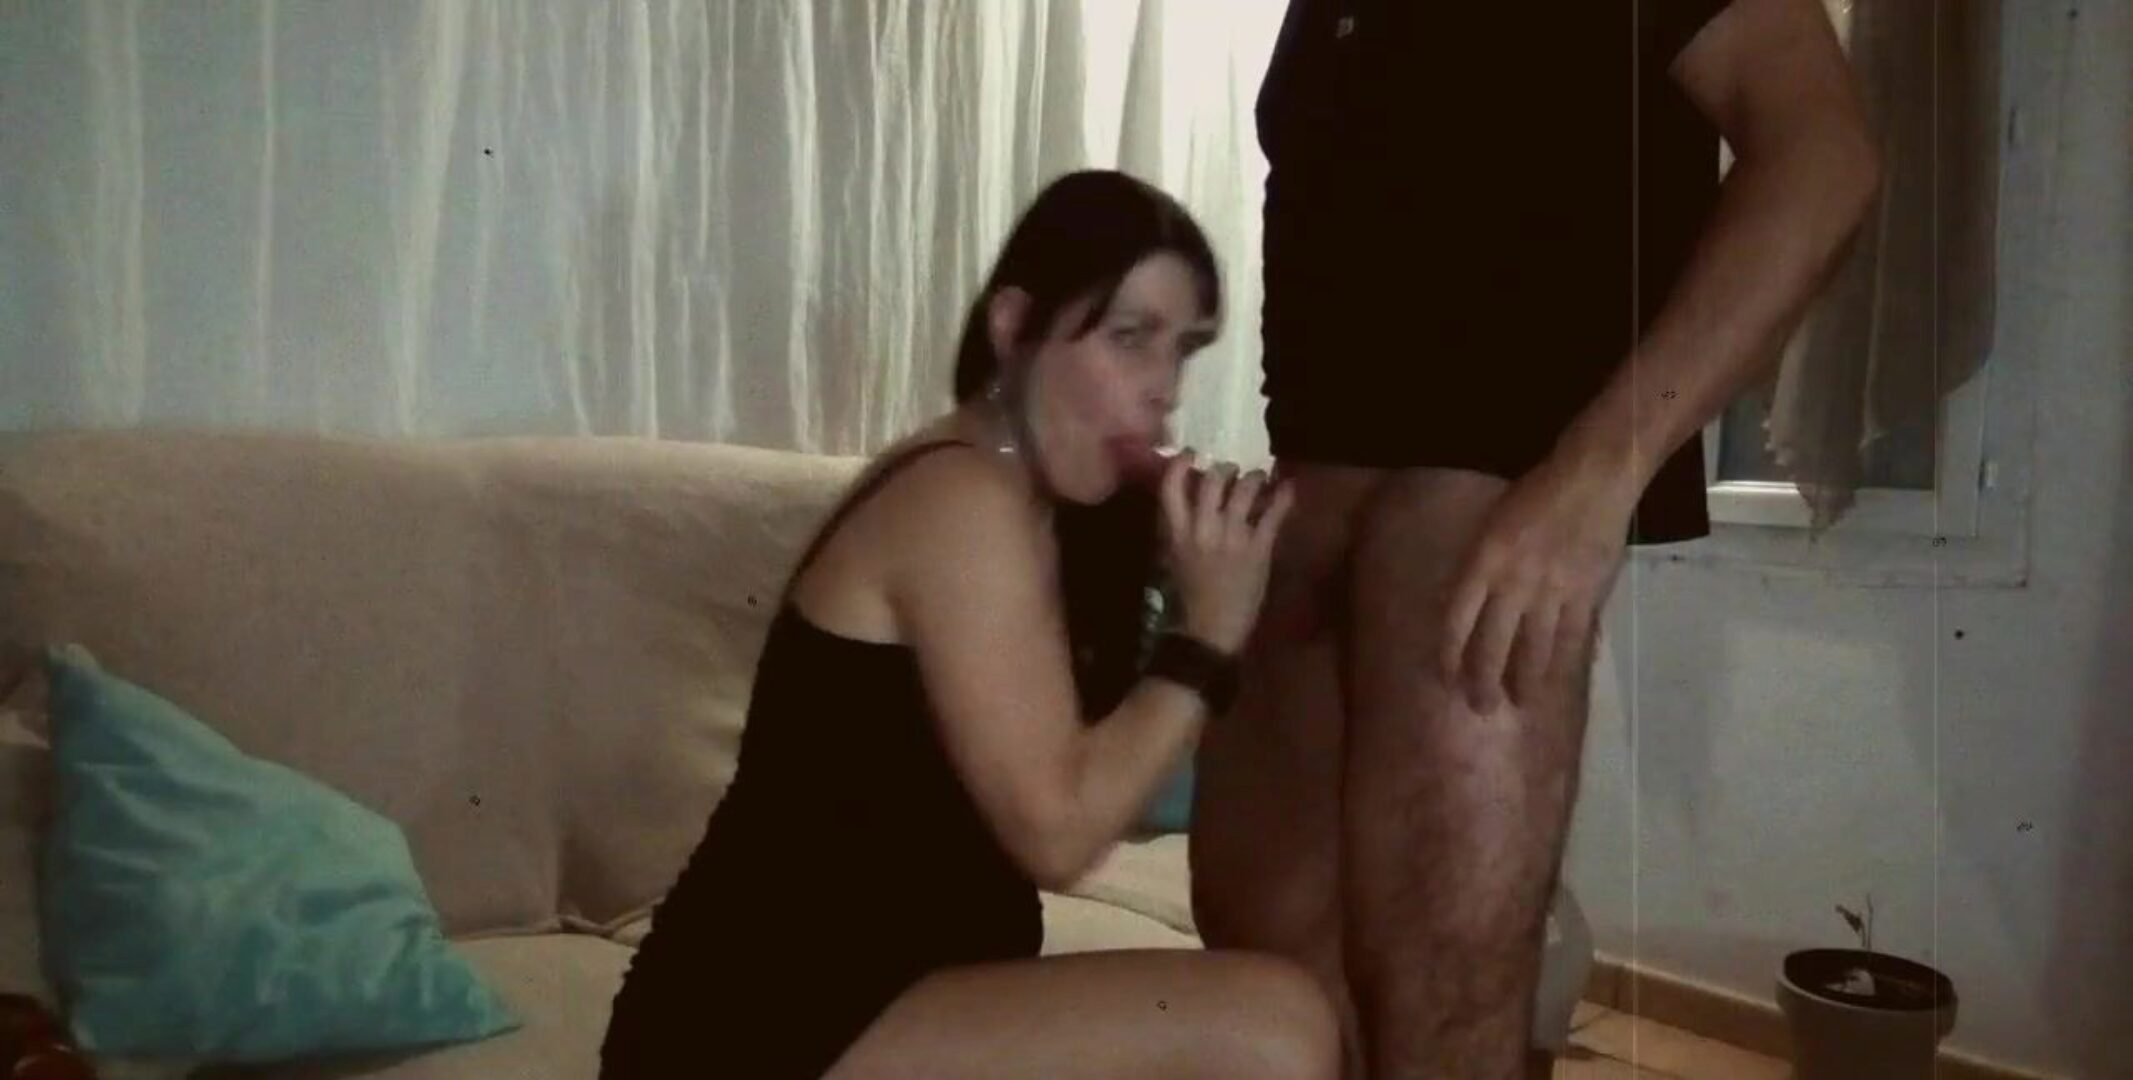 Compil Fellation: Free Hot mother I'd like to fuck HD Porn Video 88 - xHamster Watch Compil Fellation tube lovemaking movie scene for free on xHamster, with the excellent collection of French Hot mother I'd like to fuck & Hot Sluts HD porno video sequences